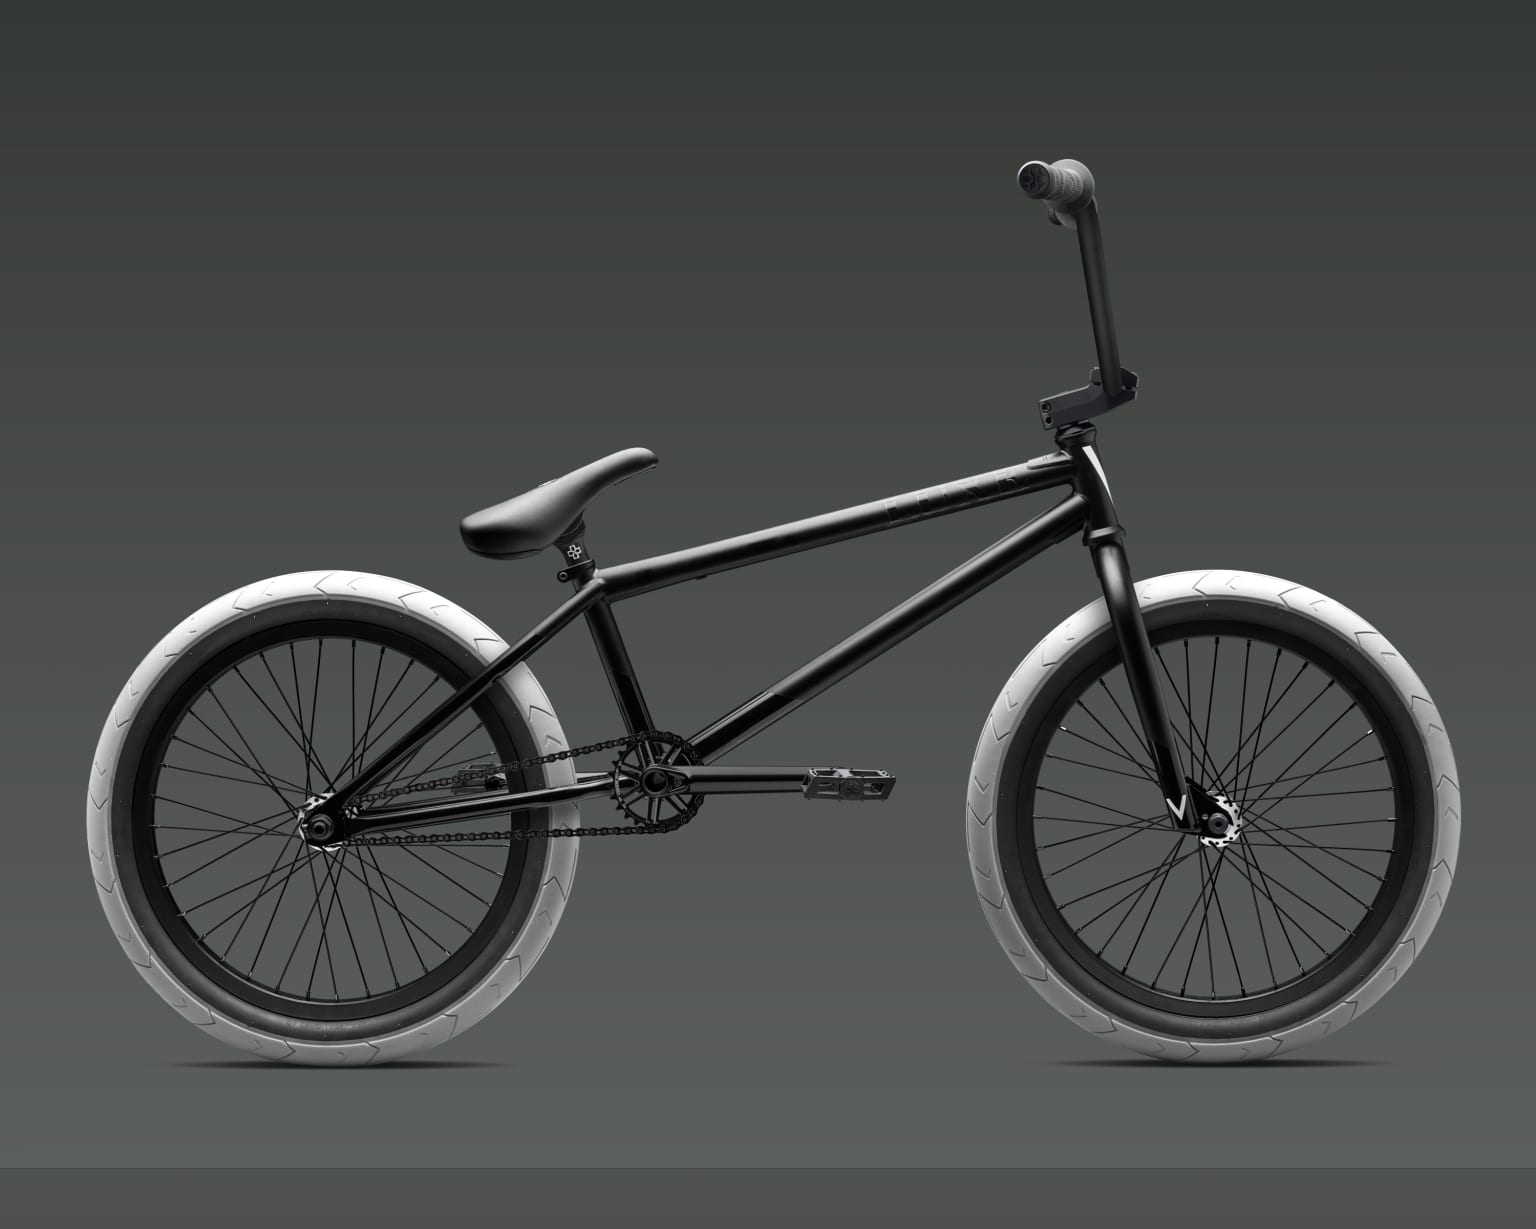 Verde BMX / Cinema Wheel Co. Creative